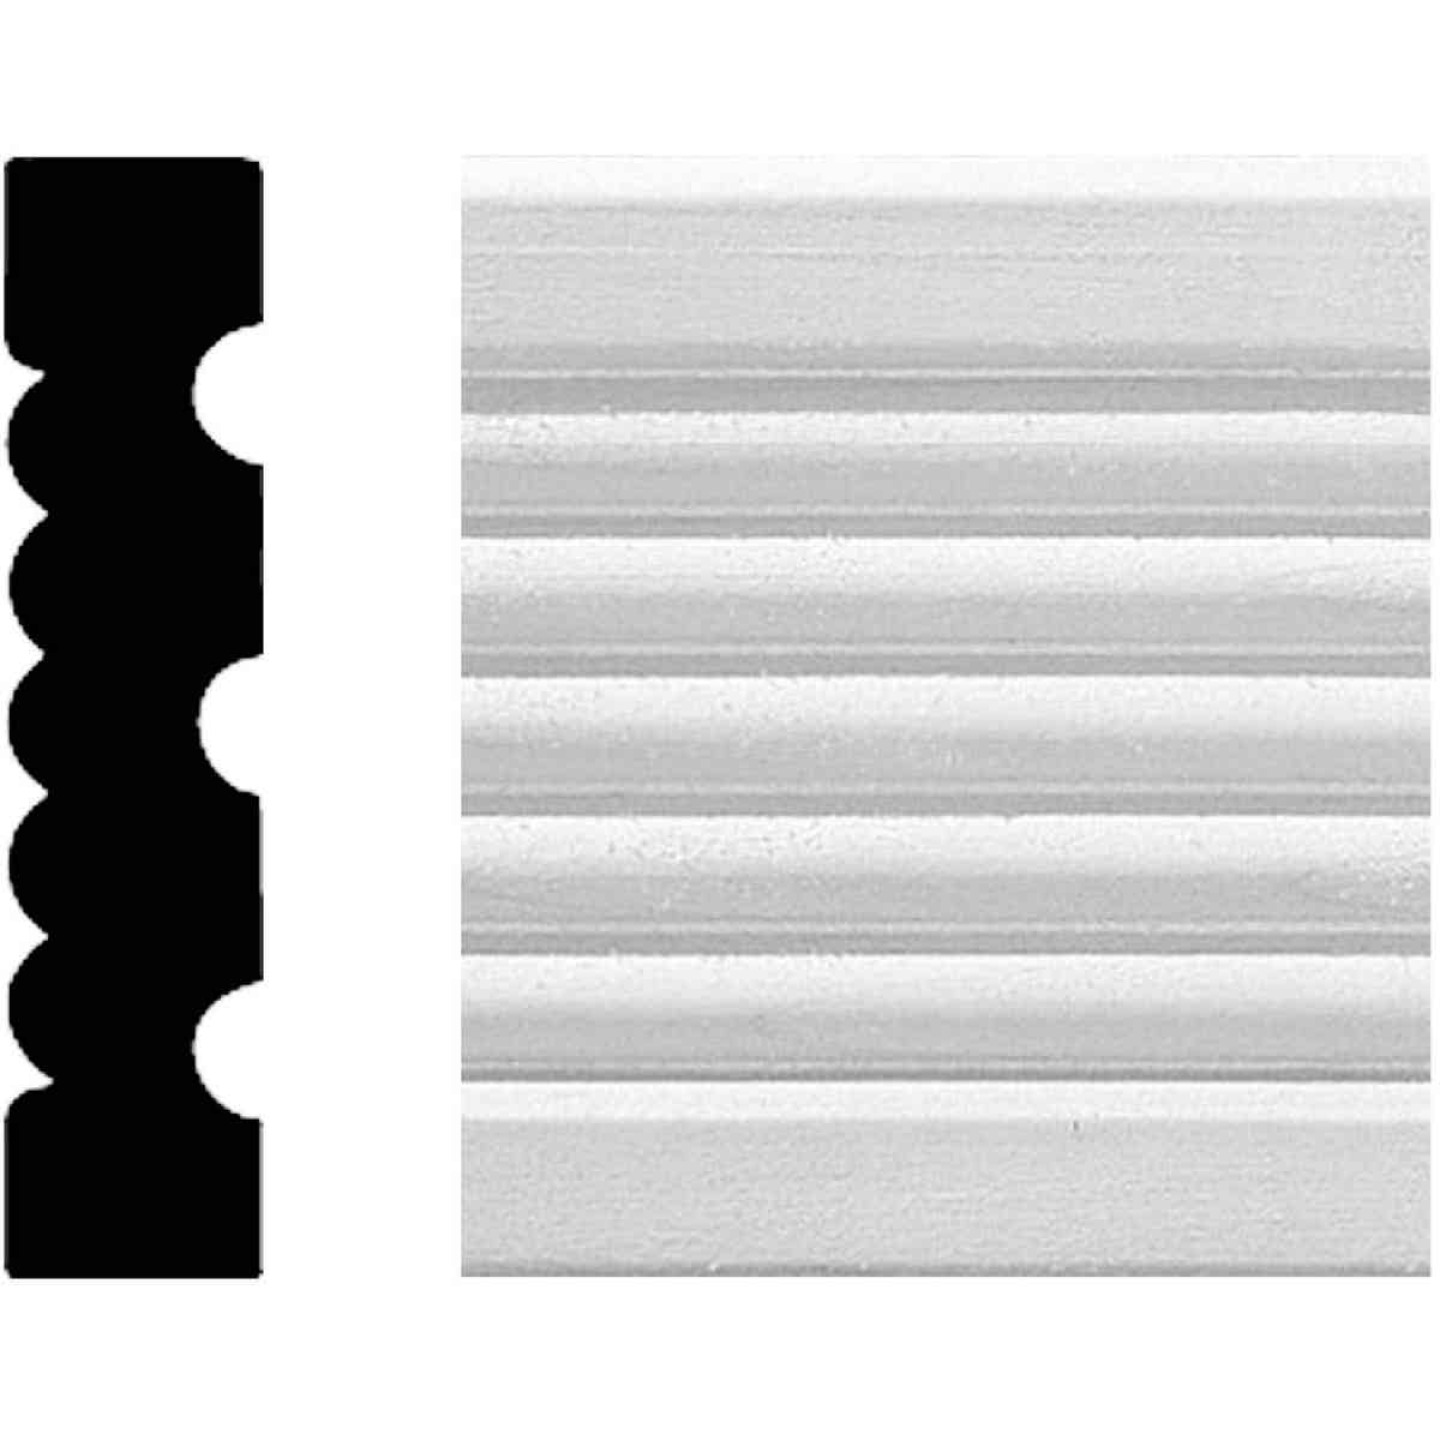 House of Fara 3/4 In. W. x 3-1/4 In. H. x 8 Ft. L. White MDF Fluted Casing Molding Image 1